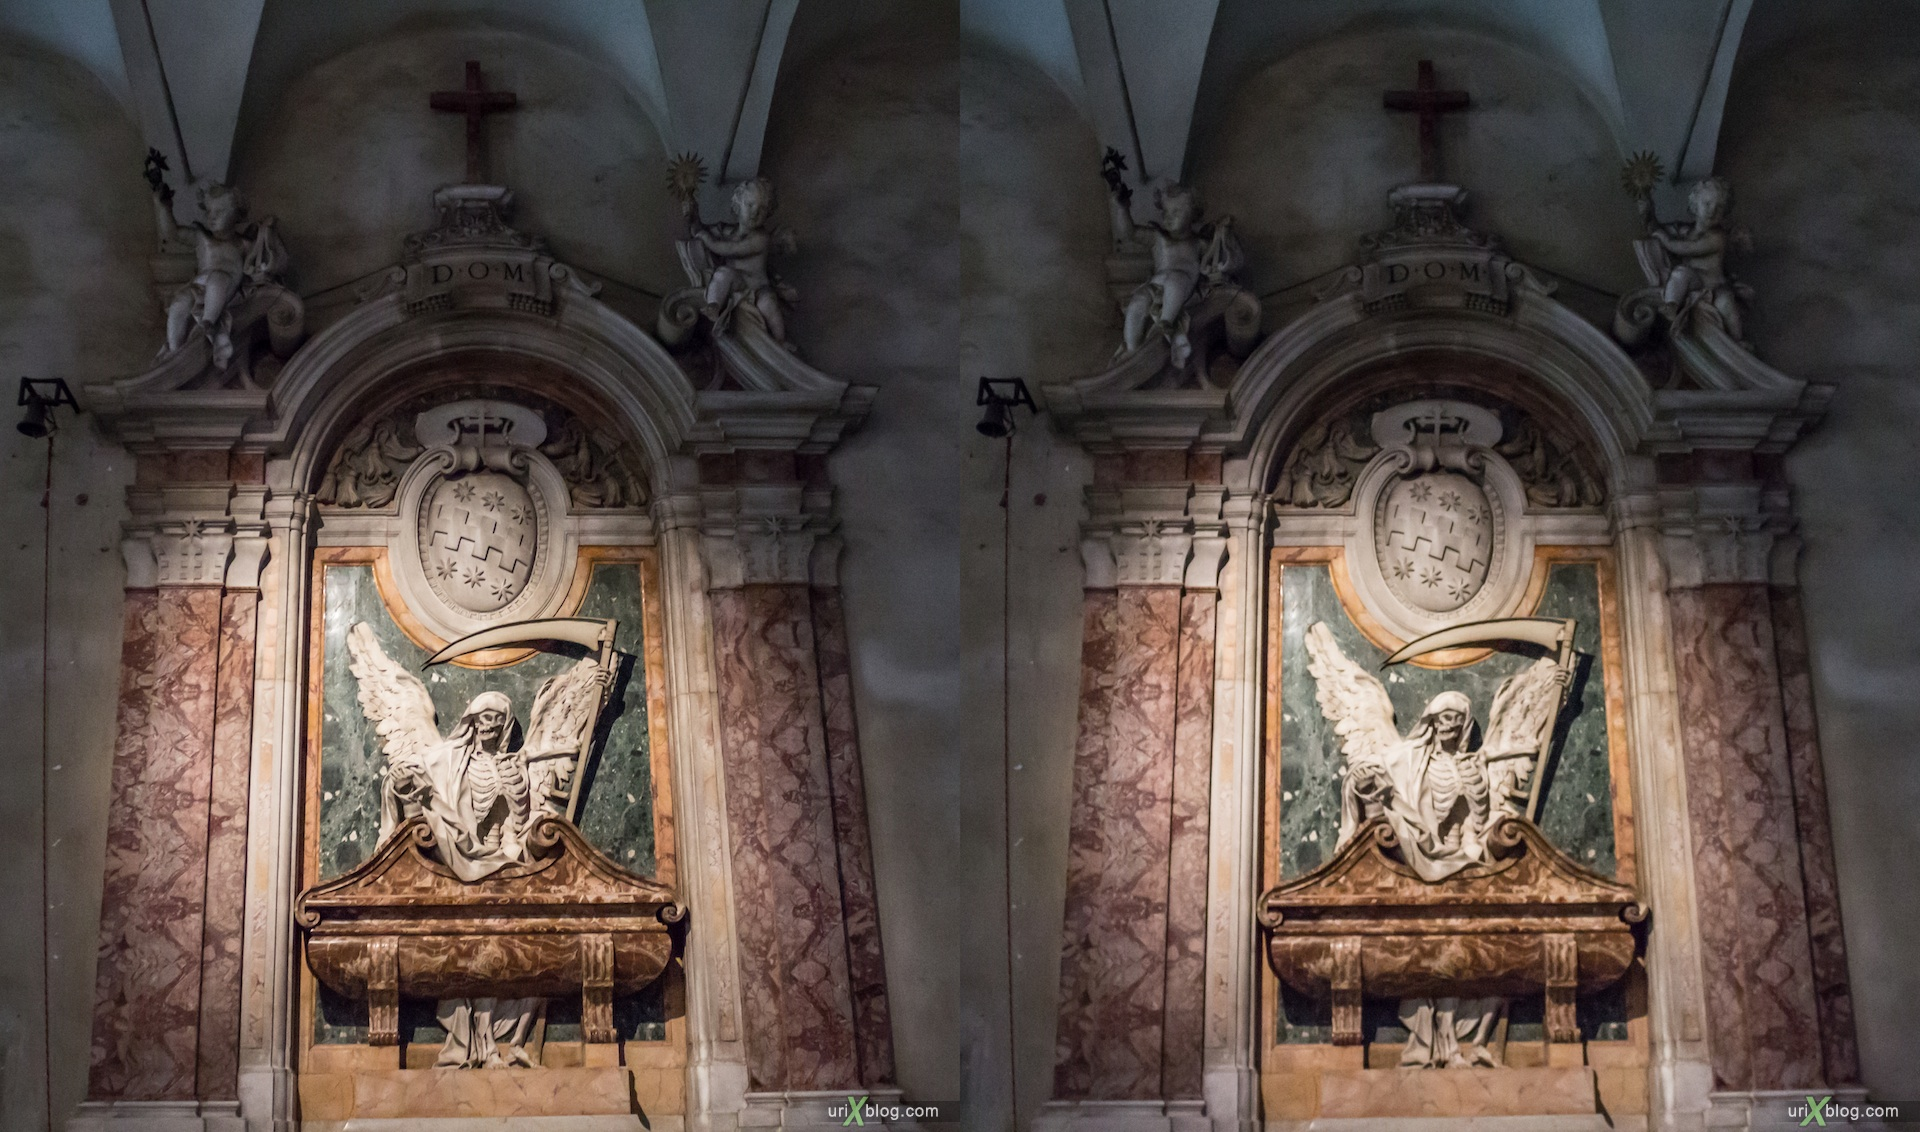 2012, church of San Pietro in Vincoli, Rome, Italy, cathedral, monastery, Christianity, Catholicism, 3D, stereo pair, cross-eyed, crossview, cross view stereo pair